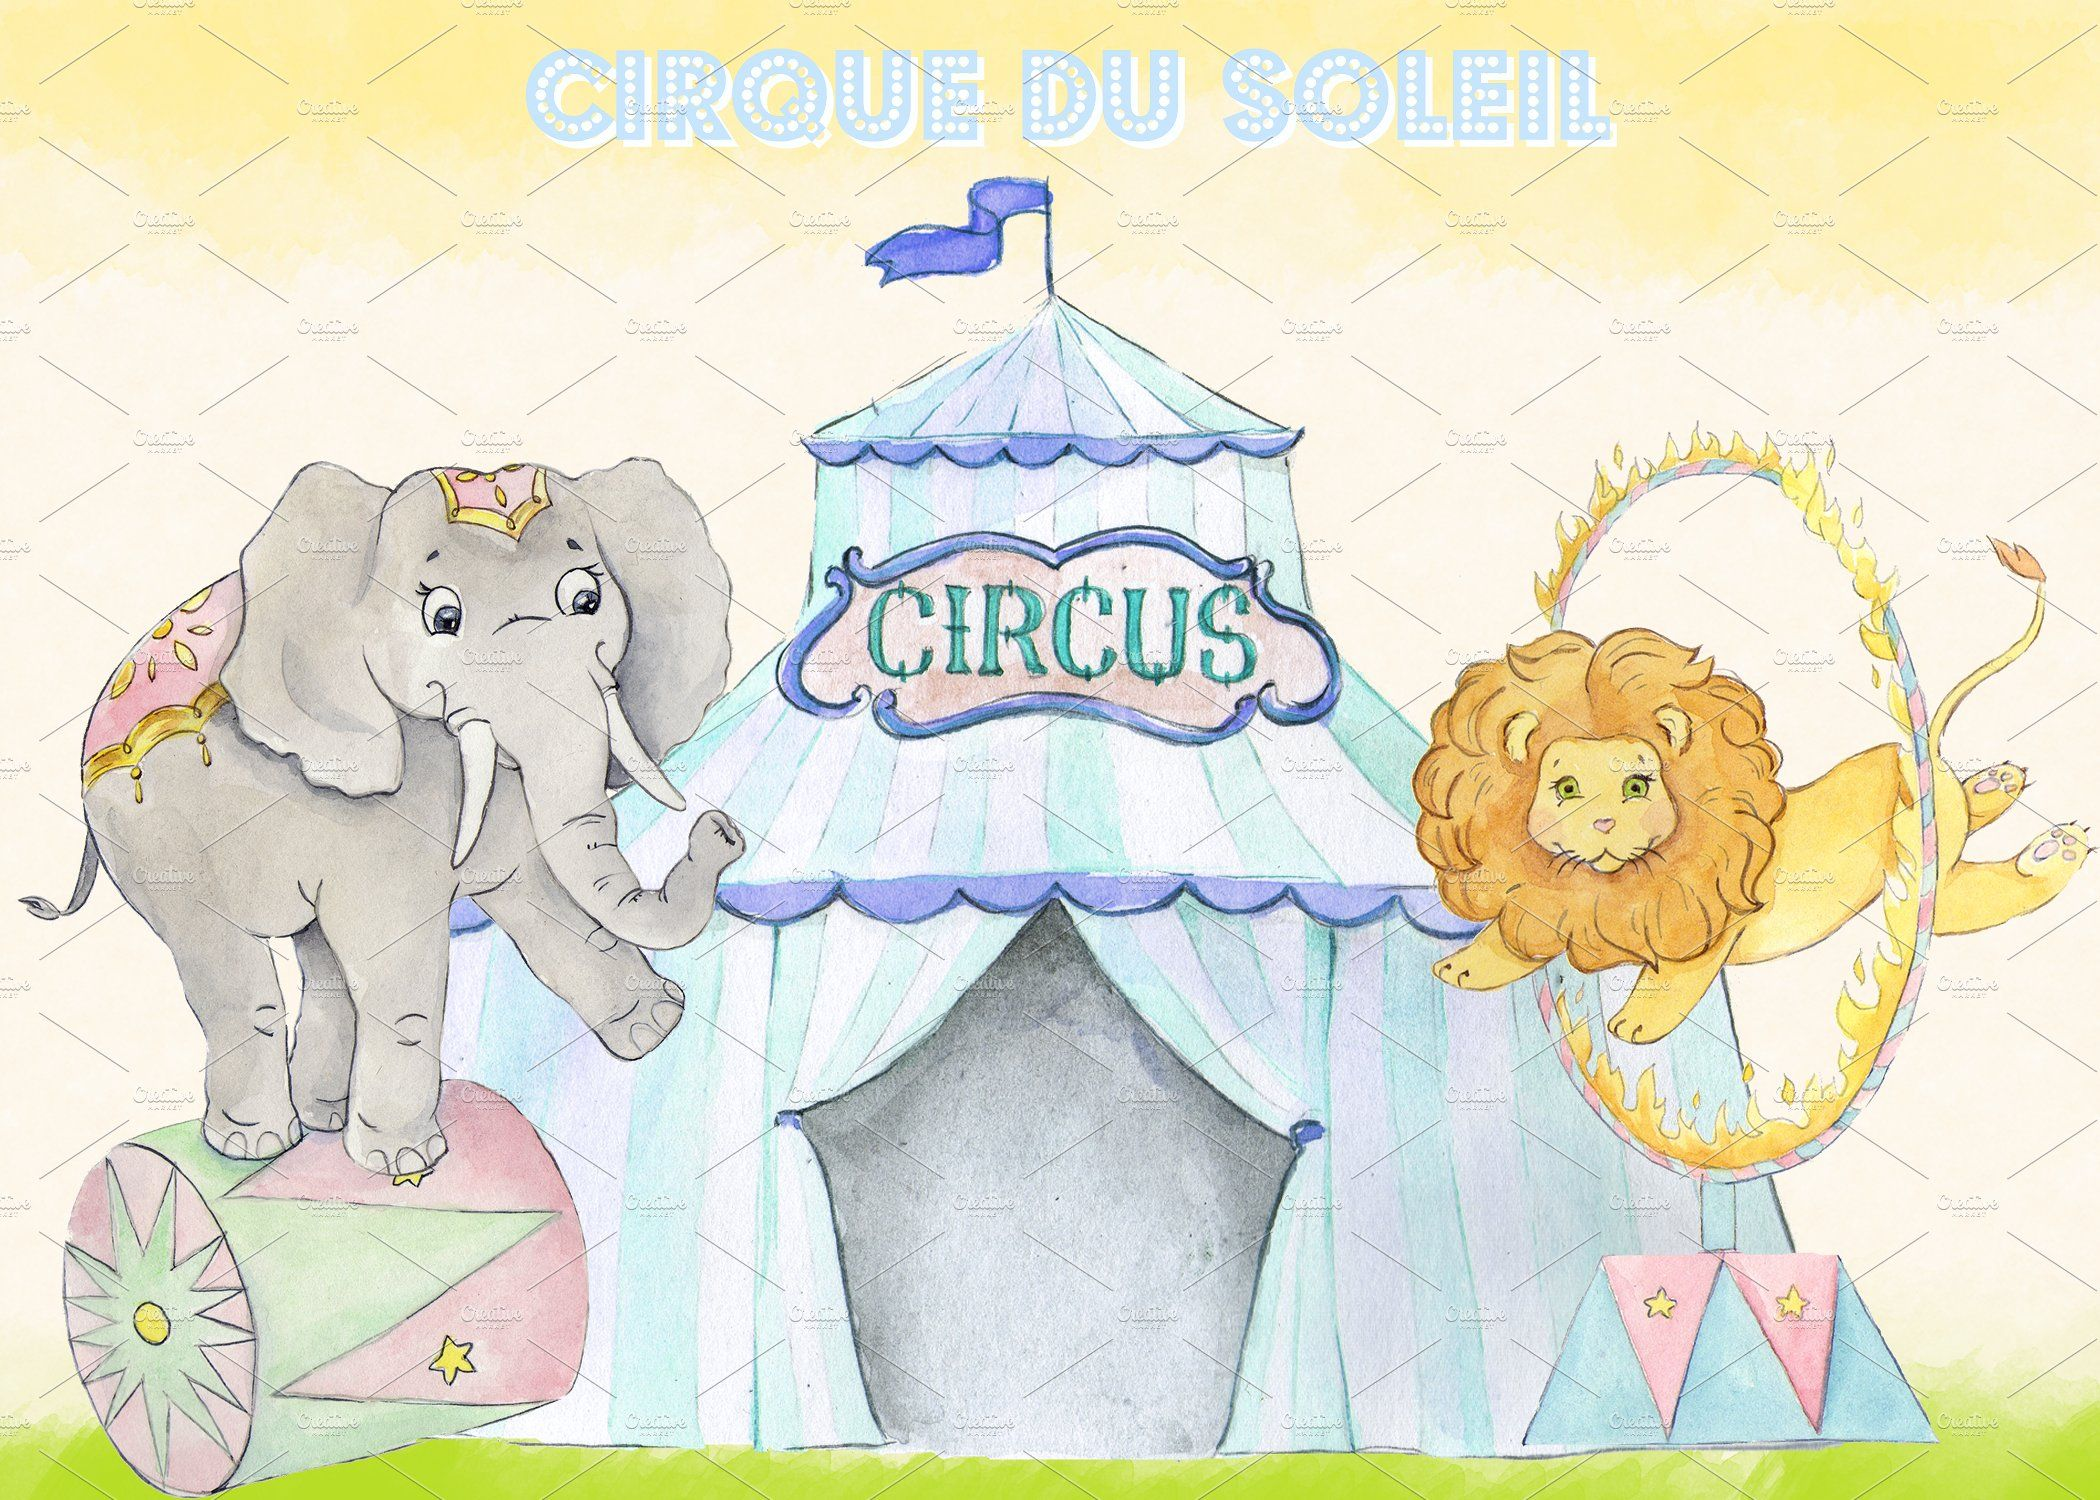 Carousel clipart tent circus pink. Pin on creative resources